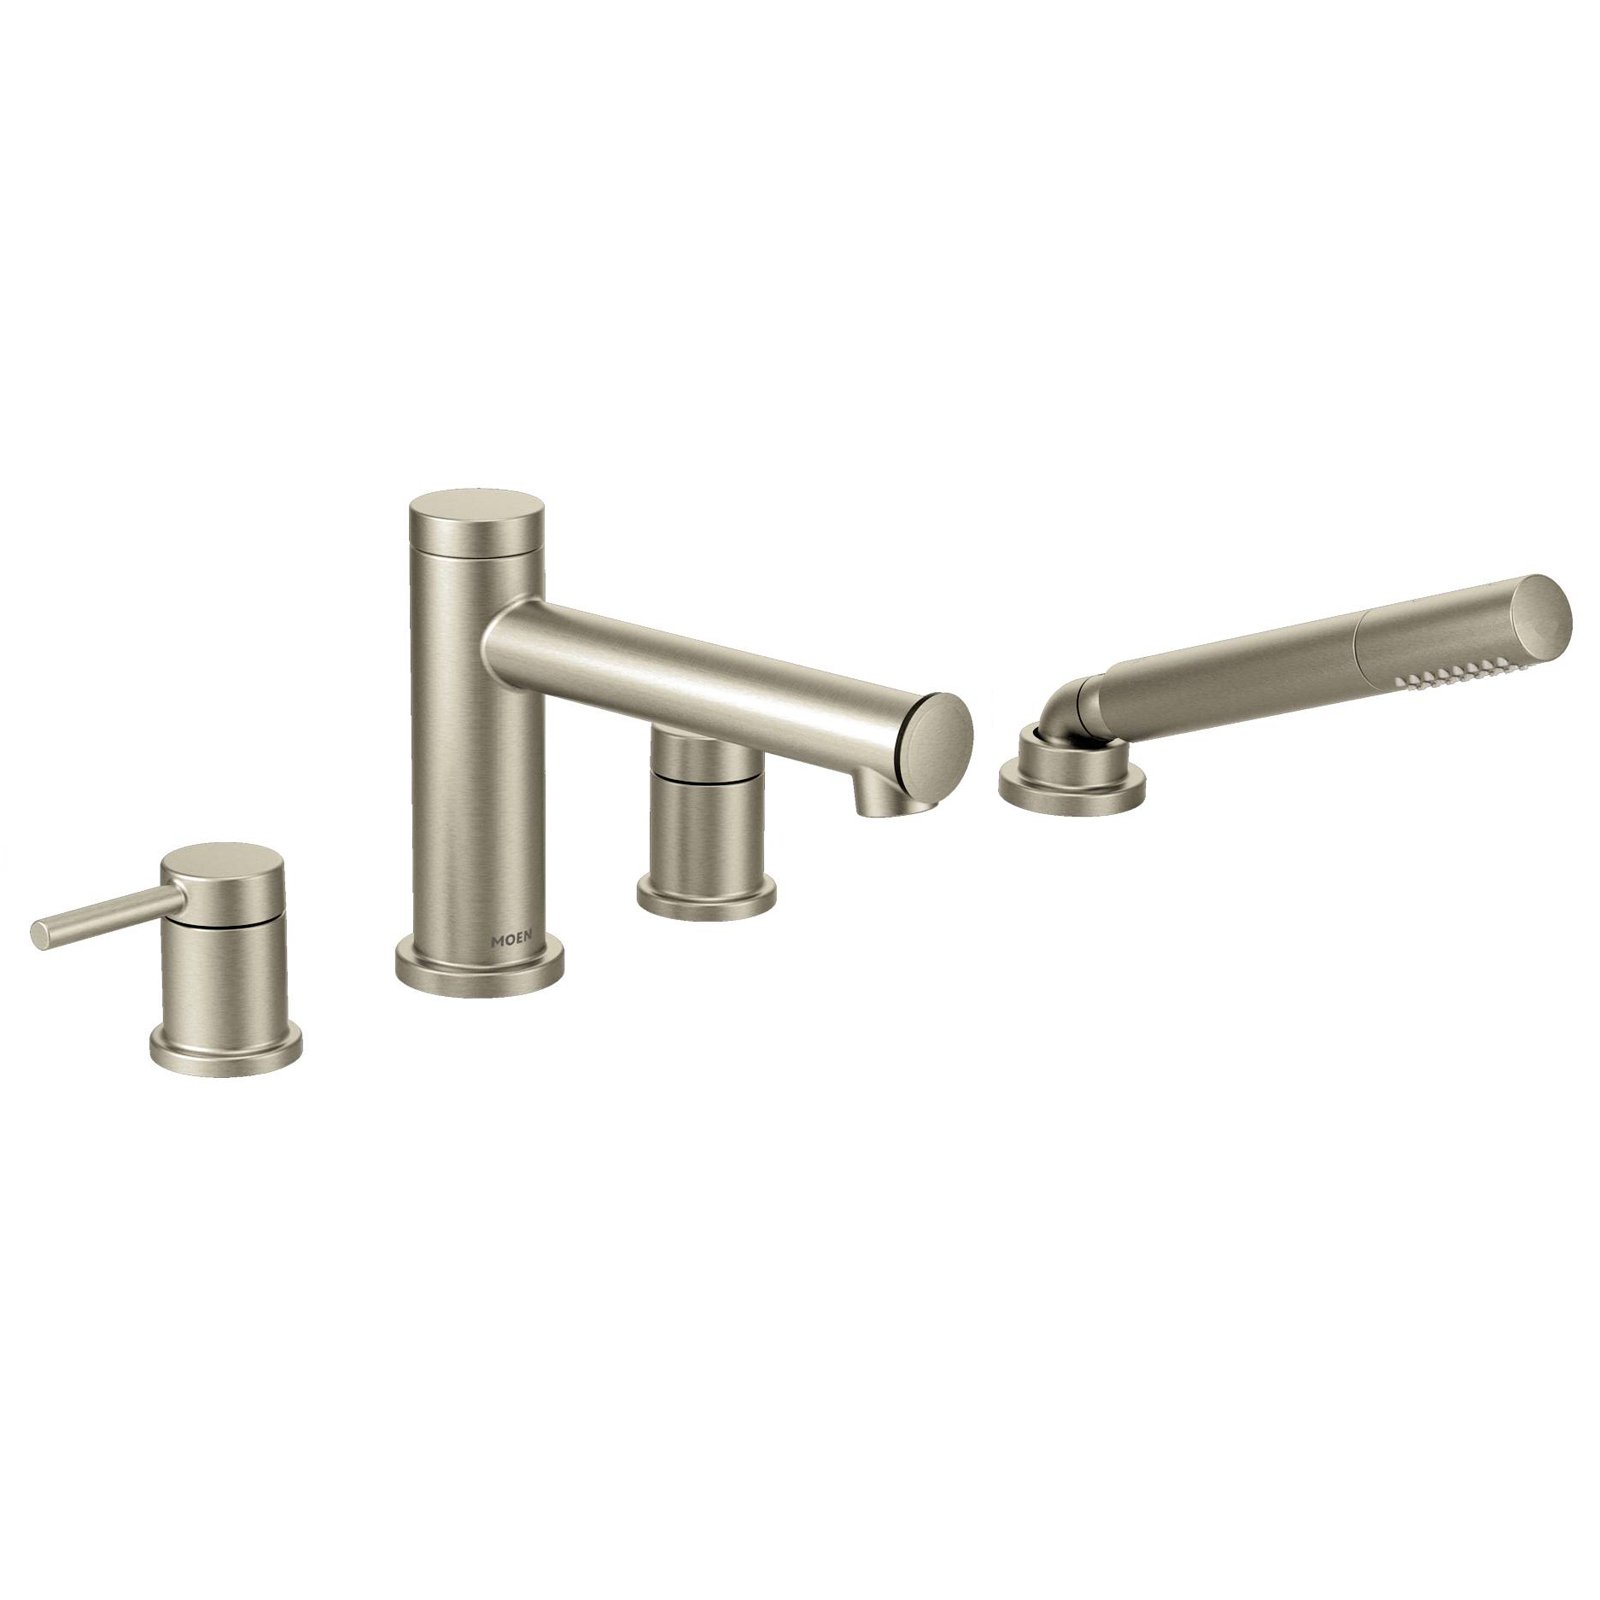 Moen Align Brushed Nickel Two Handle Diverter Roman Tub Faucet Includes Hand Shower Roman Tub Faucets Tub Faucet Faucet